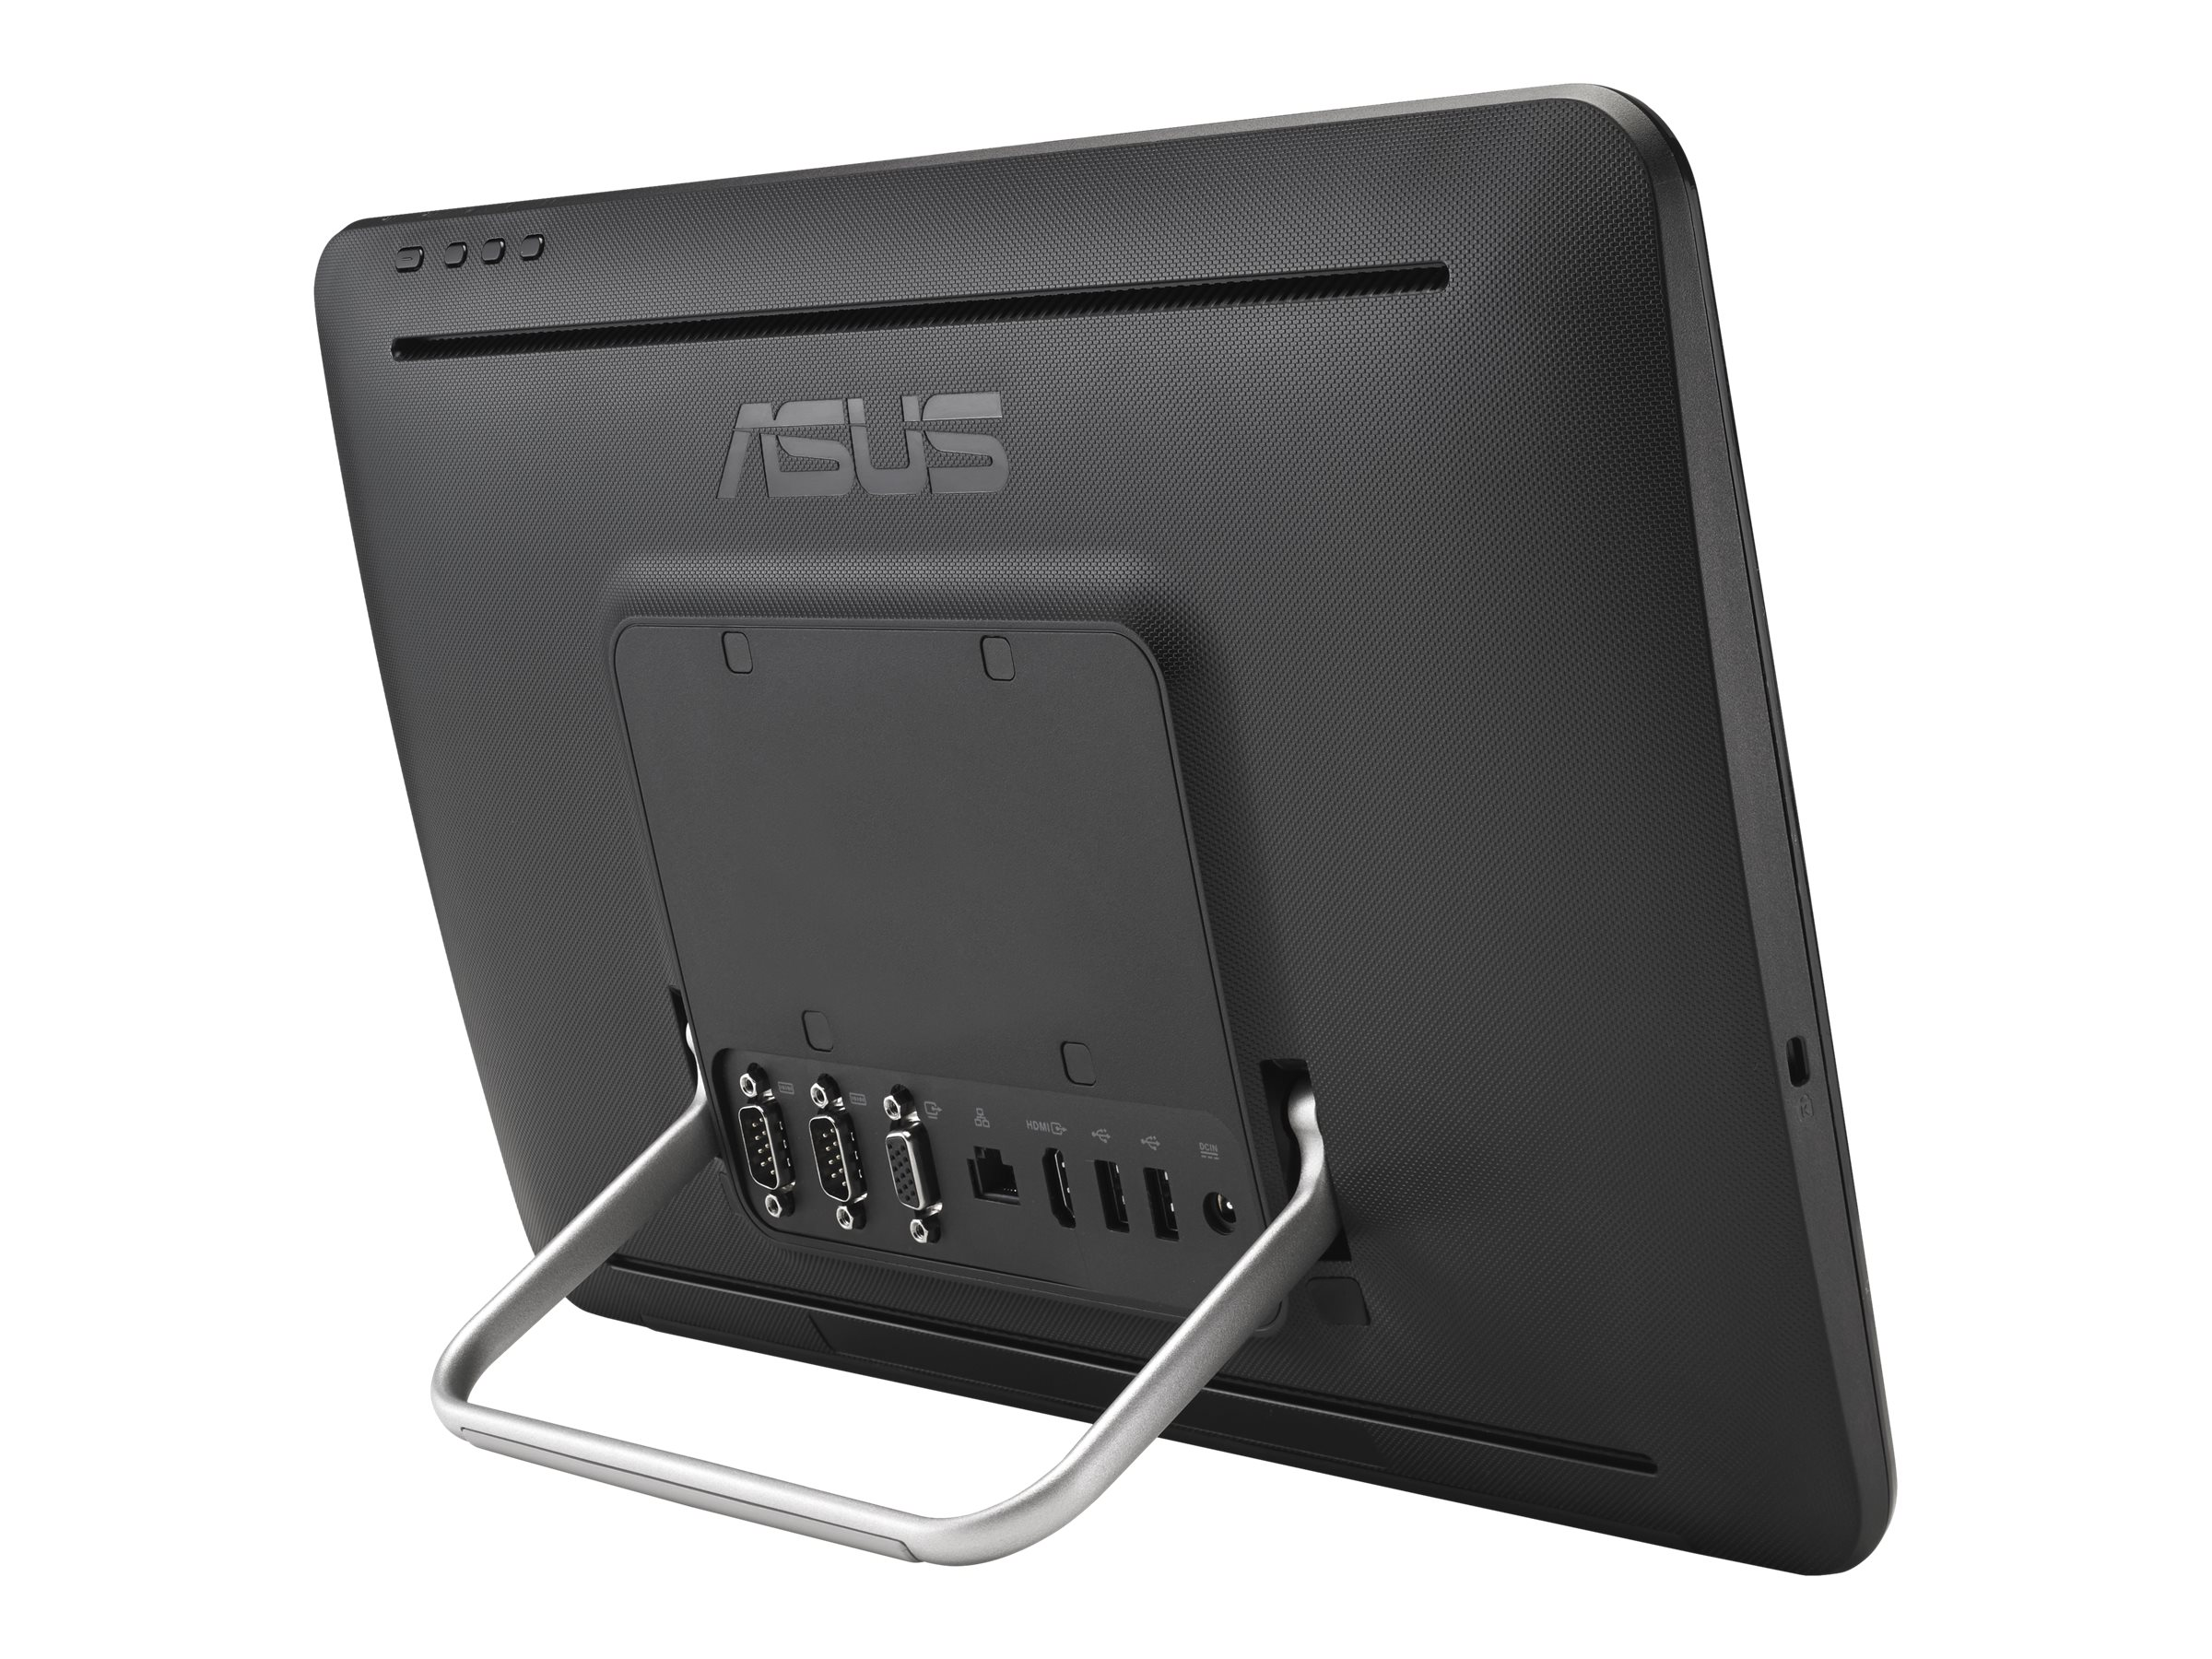 """ASUS All-in-One PC A41GAT - All-in-One (Komplettlösung) - Celeron N4000 / 1.1 GHz - RAM 4 GB - SSD 128 GB - UHD Graphics 600 - GigE - WLAN: Bluetooth, 802.11ac - Endless OS - Monitor: LED 39.6 cm (15.6"""")"""